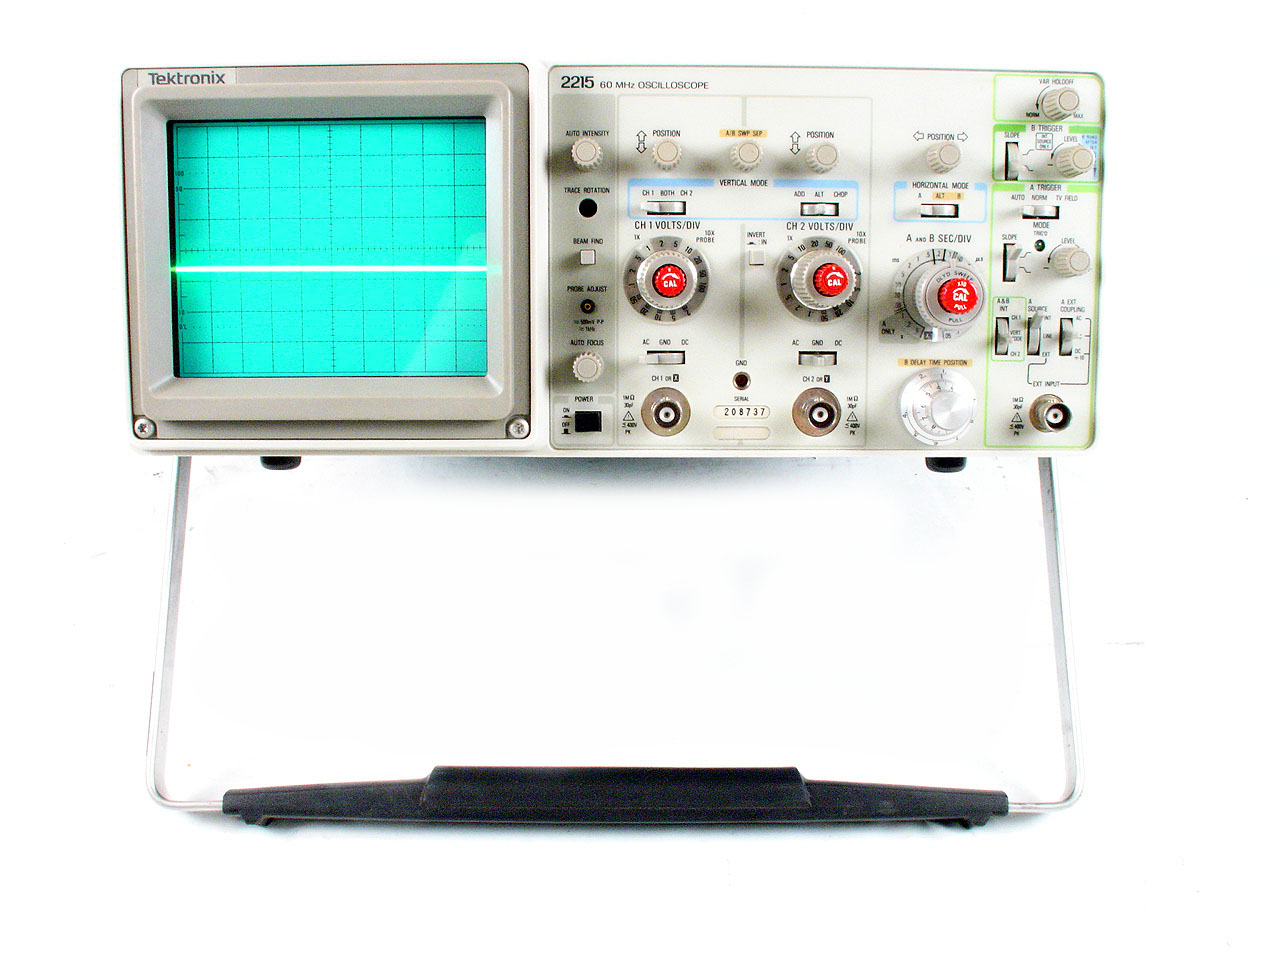 Tektronix 2215 for sale